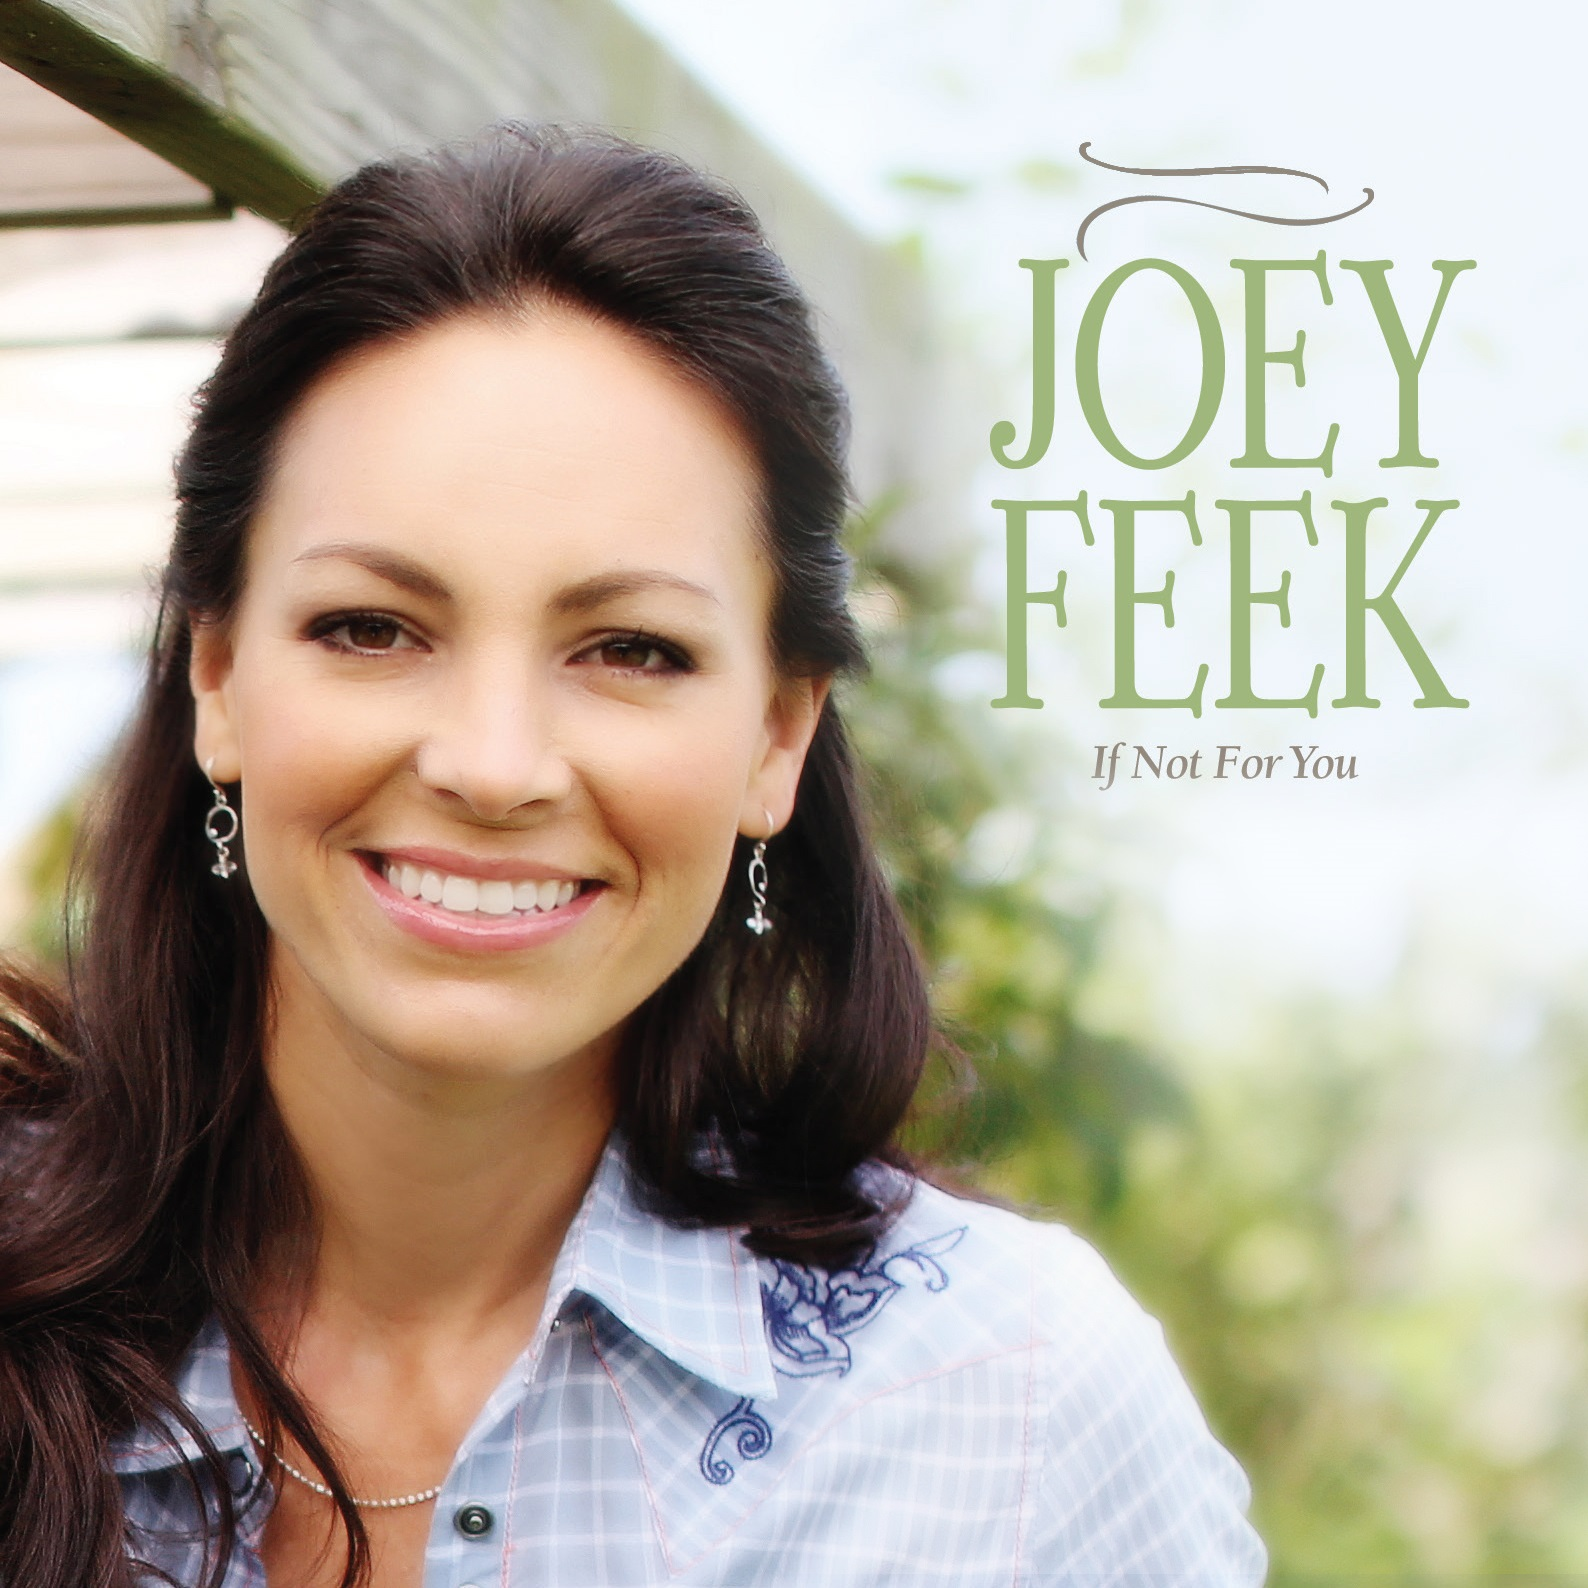 Album Review: Joey Feek's 'If Not For You'